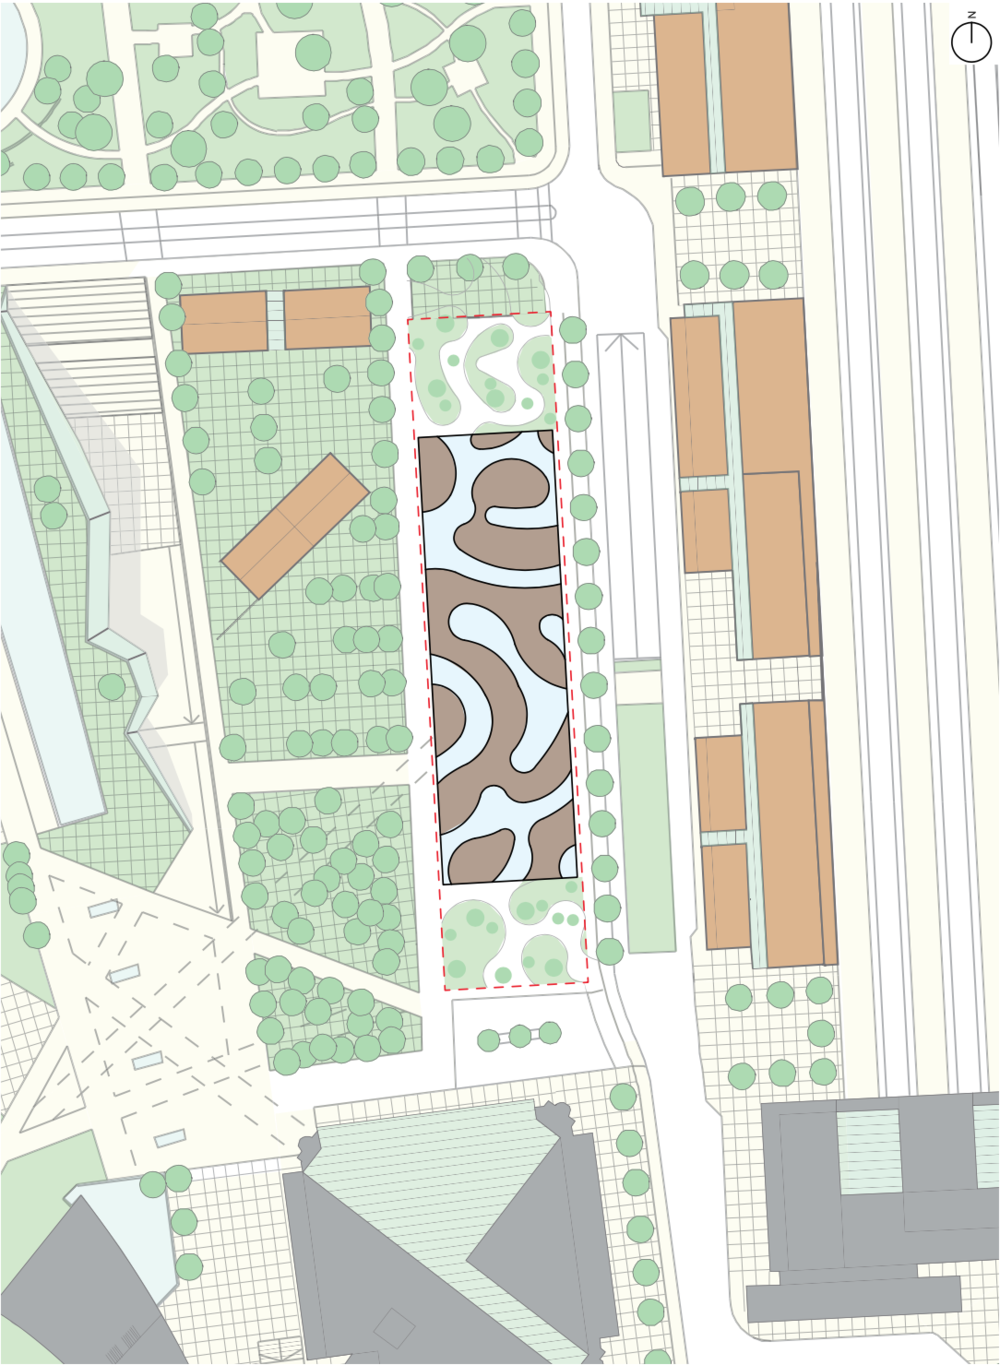 Site plan: how the proposed footprint relates to surrounding buildings and the site -